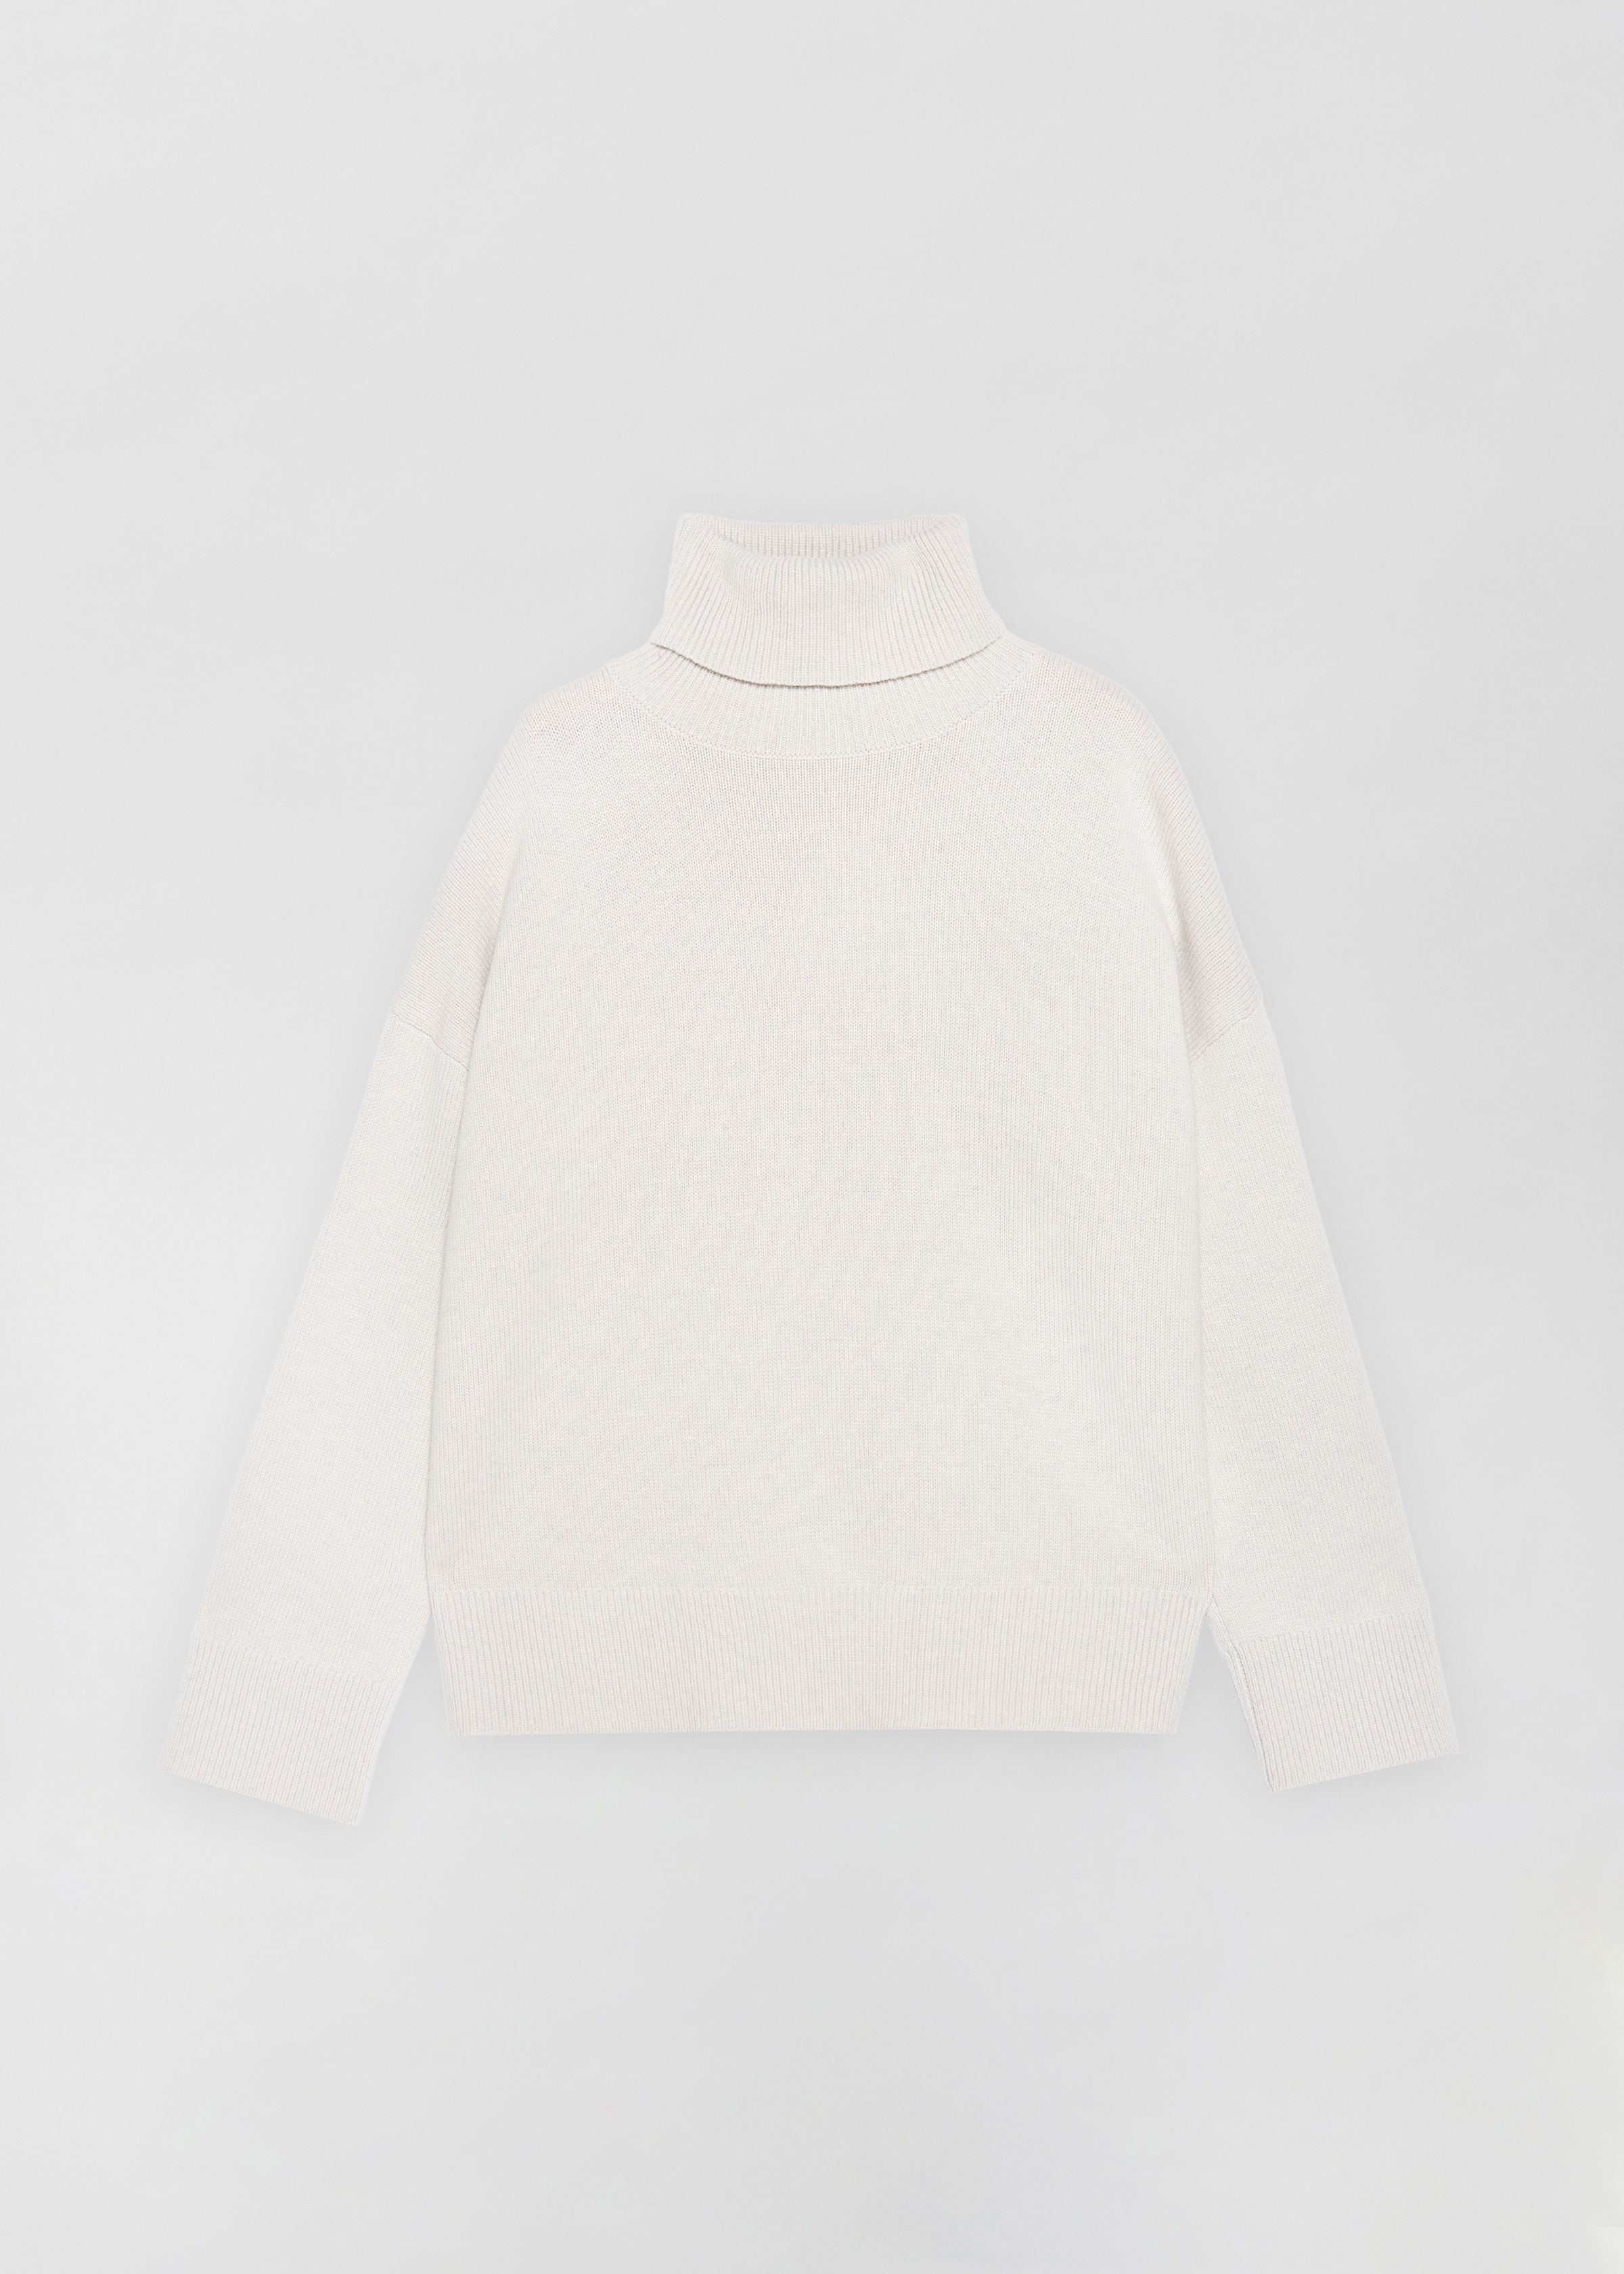 Boxy Turtleneck Sweater - Co Collections